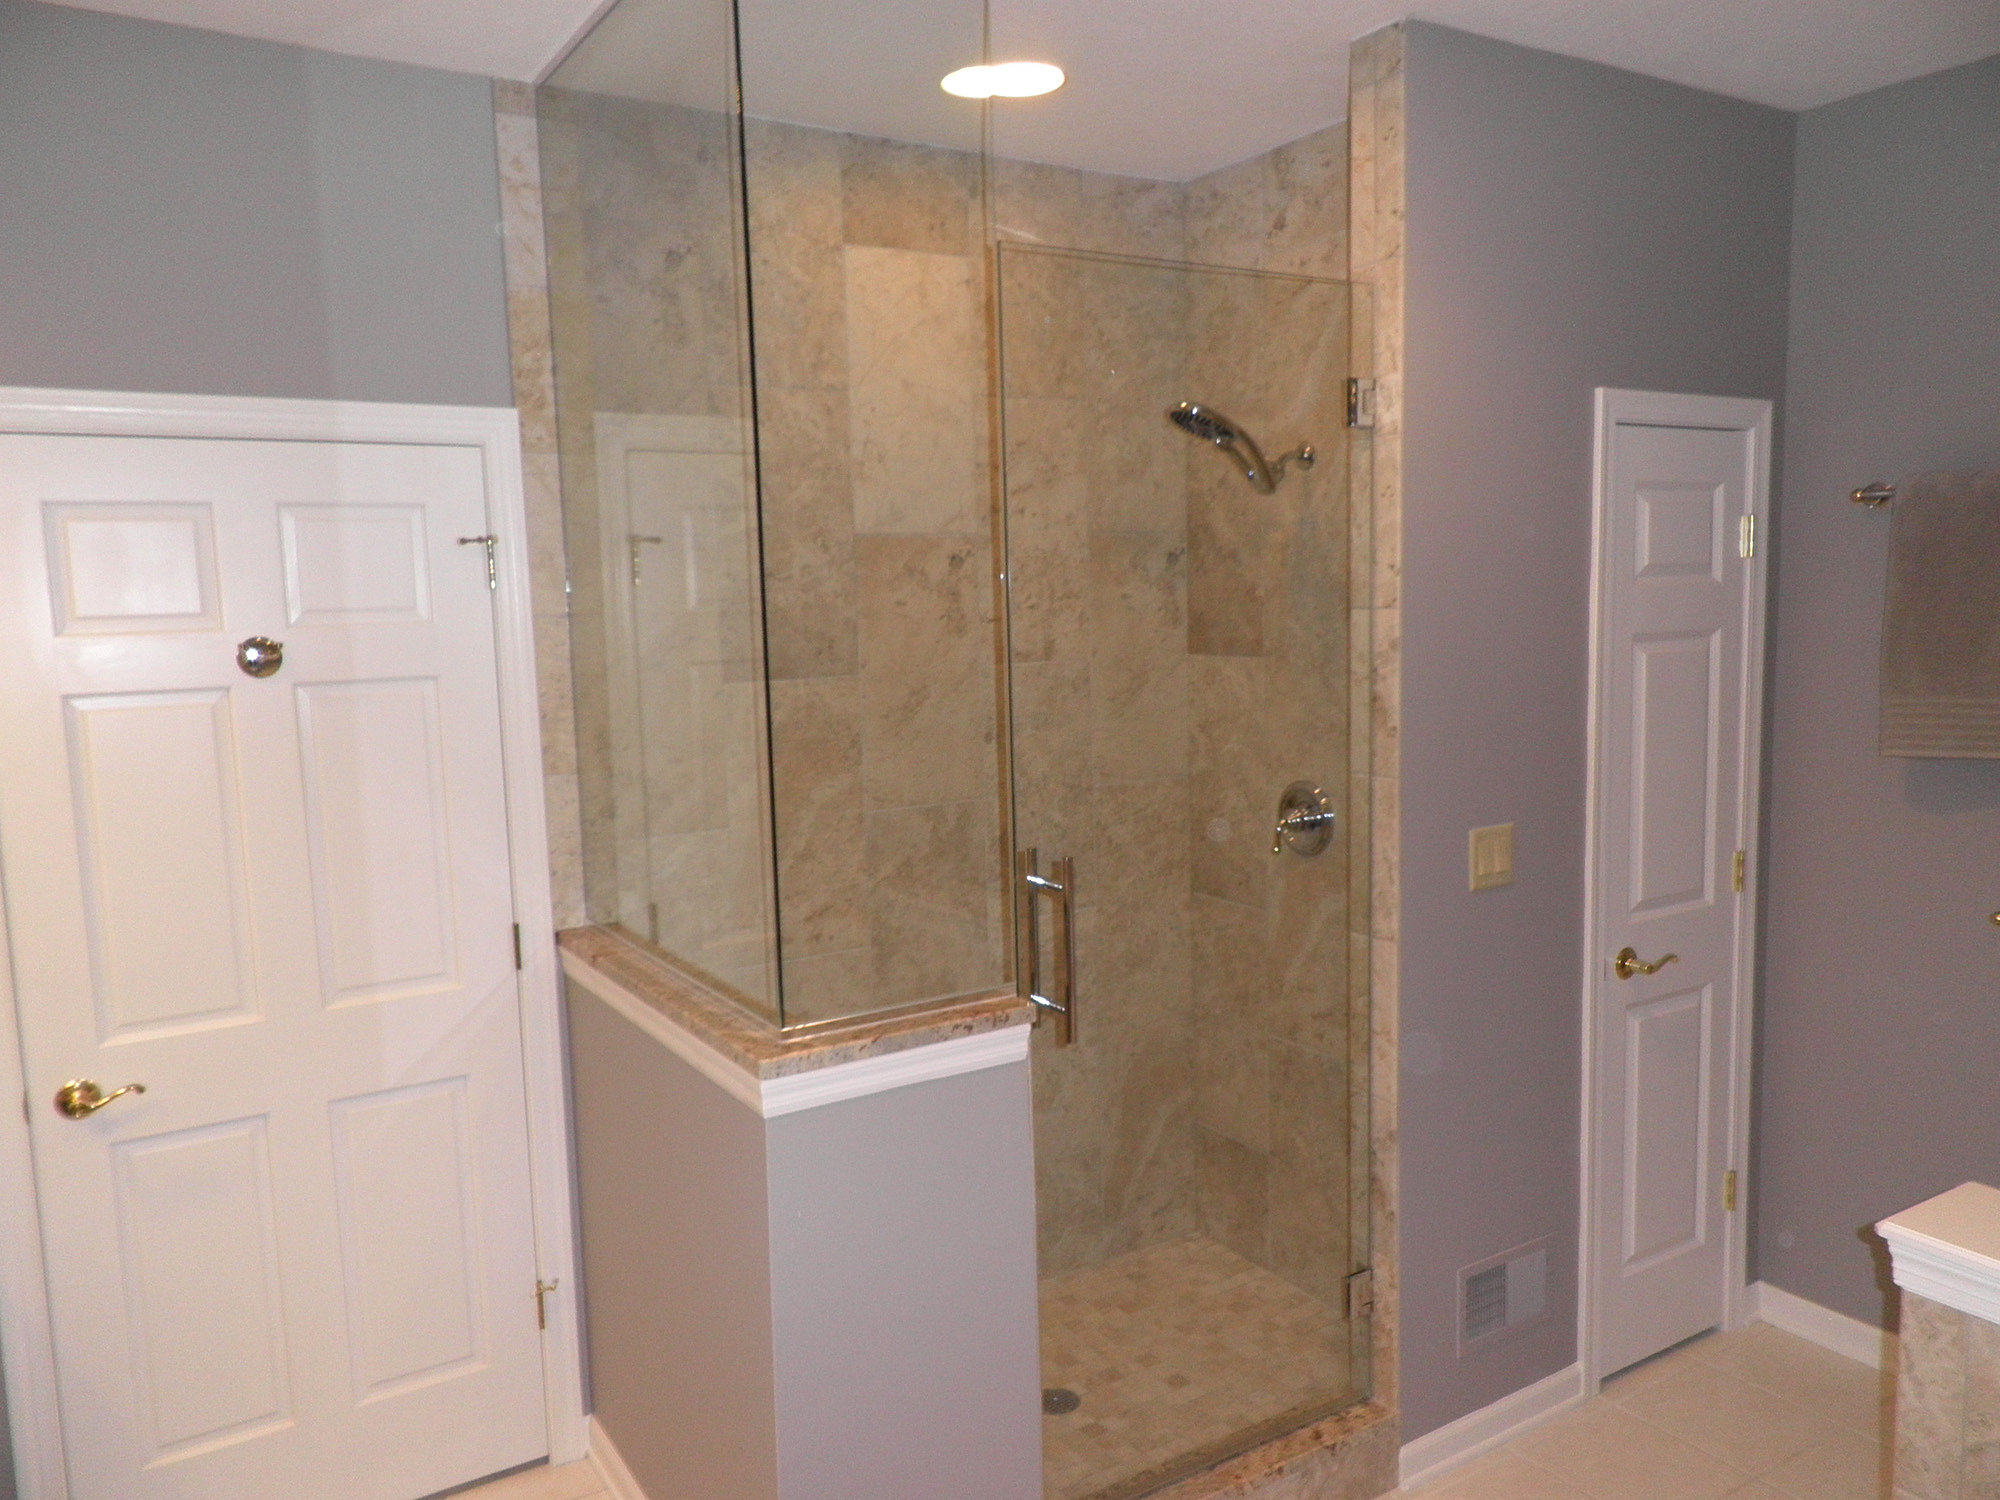 Contractor Bathroom Remodel Free Sensibility Can Change With Time